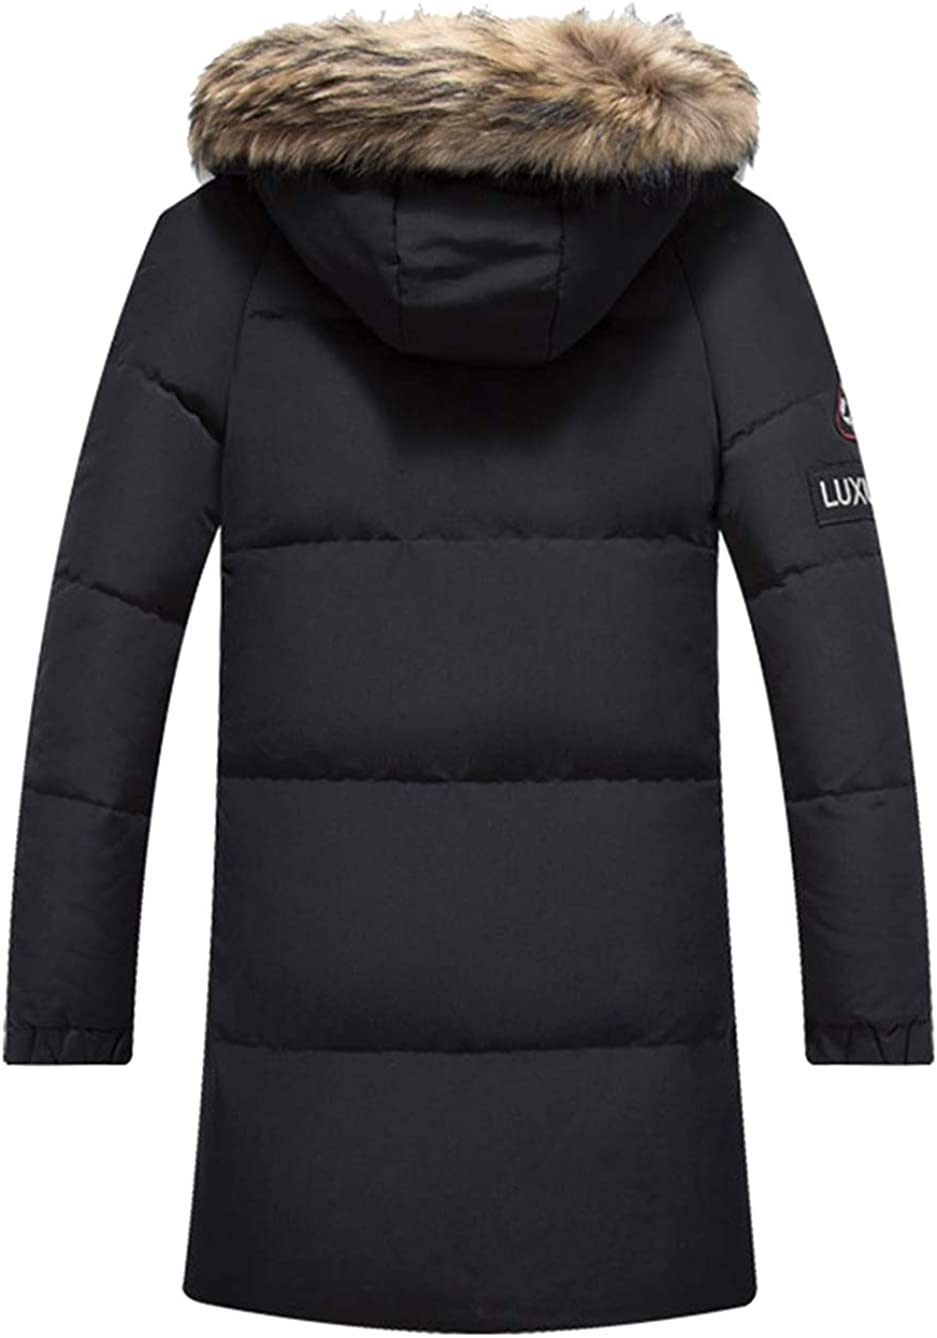 Oncefirst Mens Warm Down Jacket Winter Parka with Hood